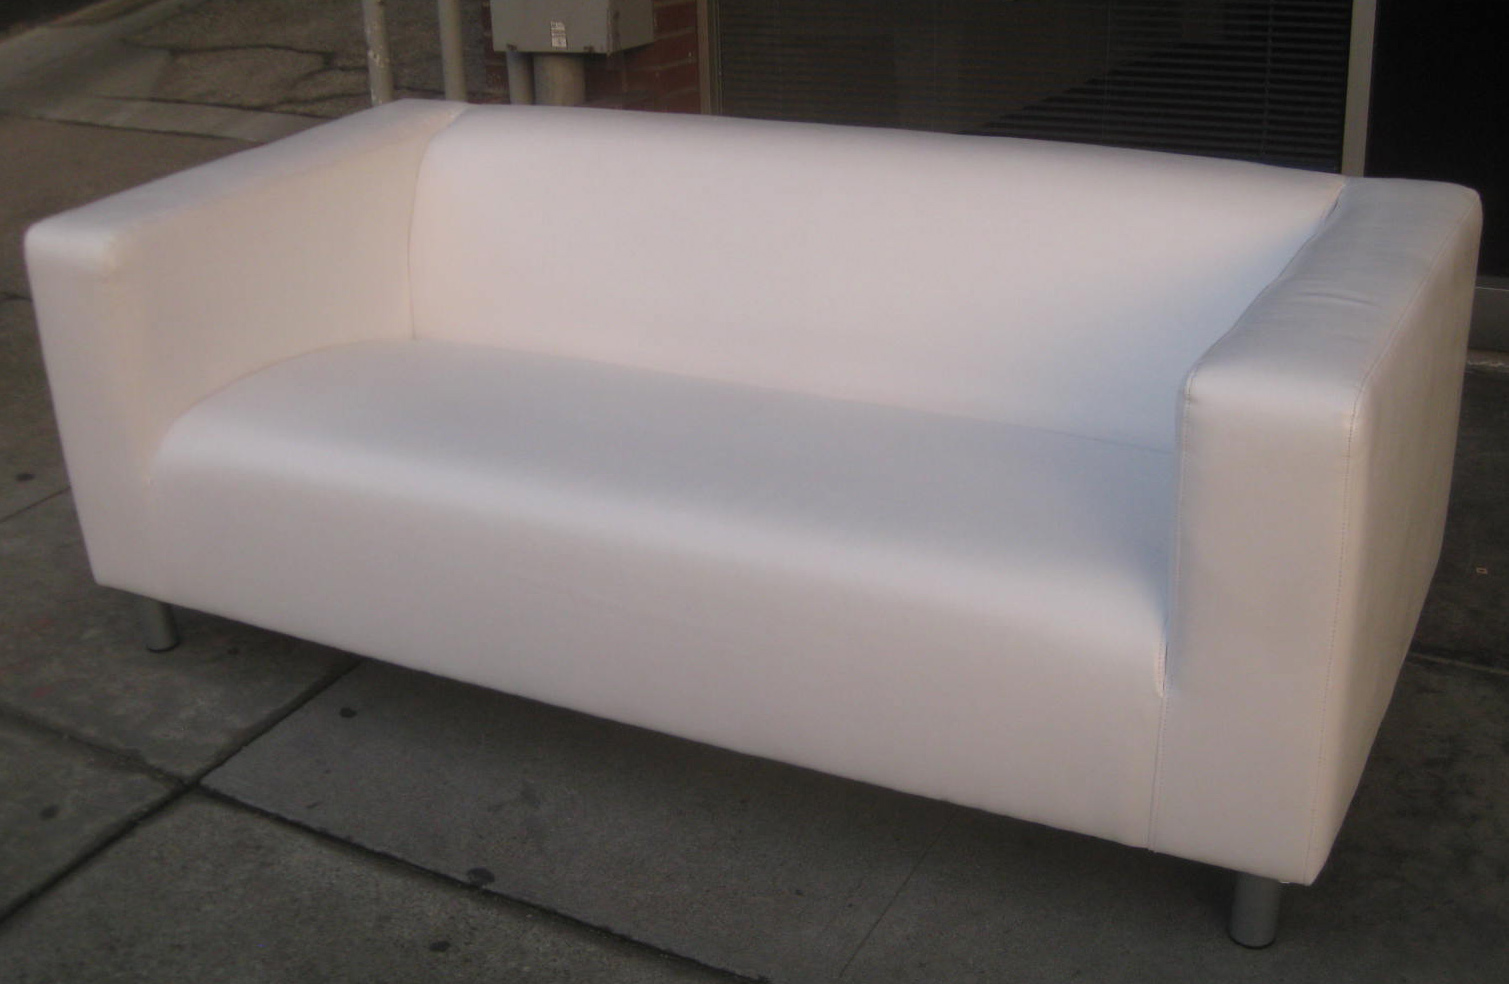 Ikea Sofa Klippan Uhuru Furniture Collectibles Sold Ikea Klippan White Leather